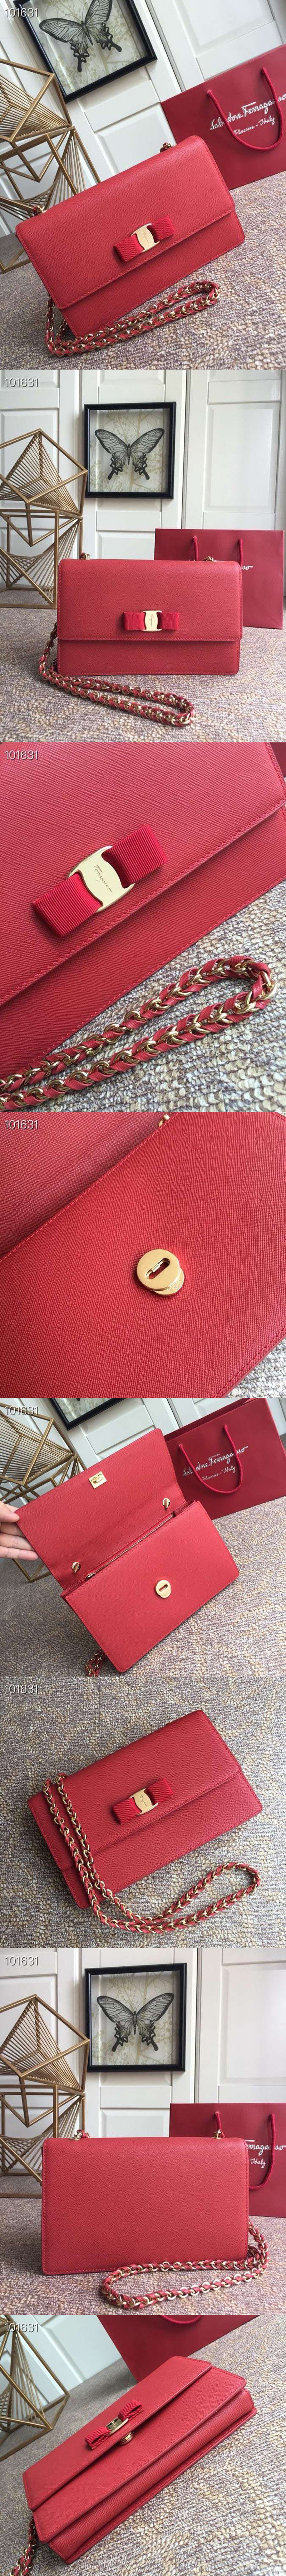 Replica Ferragamo 21E480 Ginny Bags in Red calfskin leather